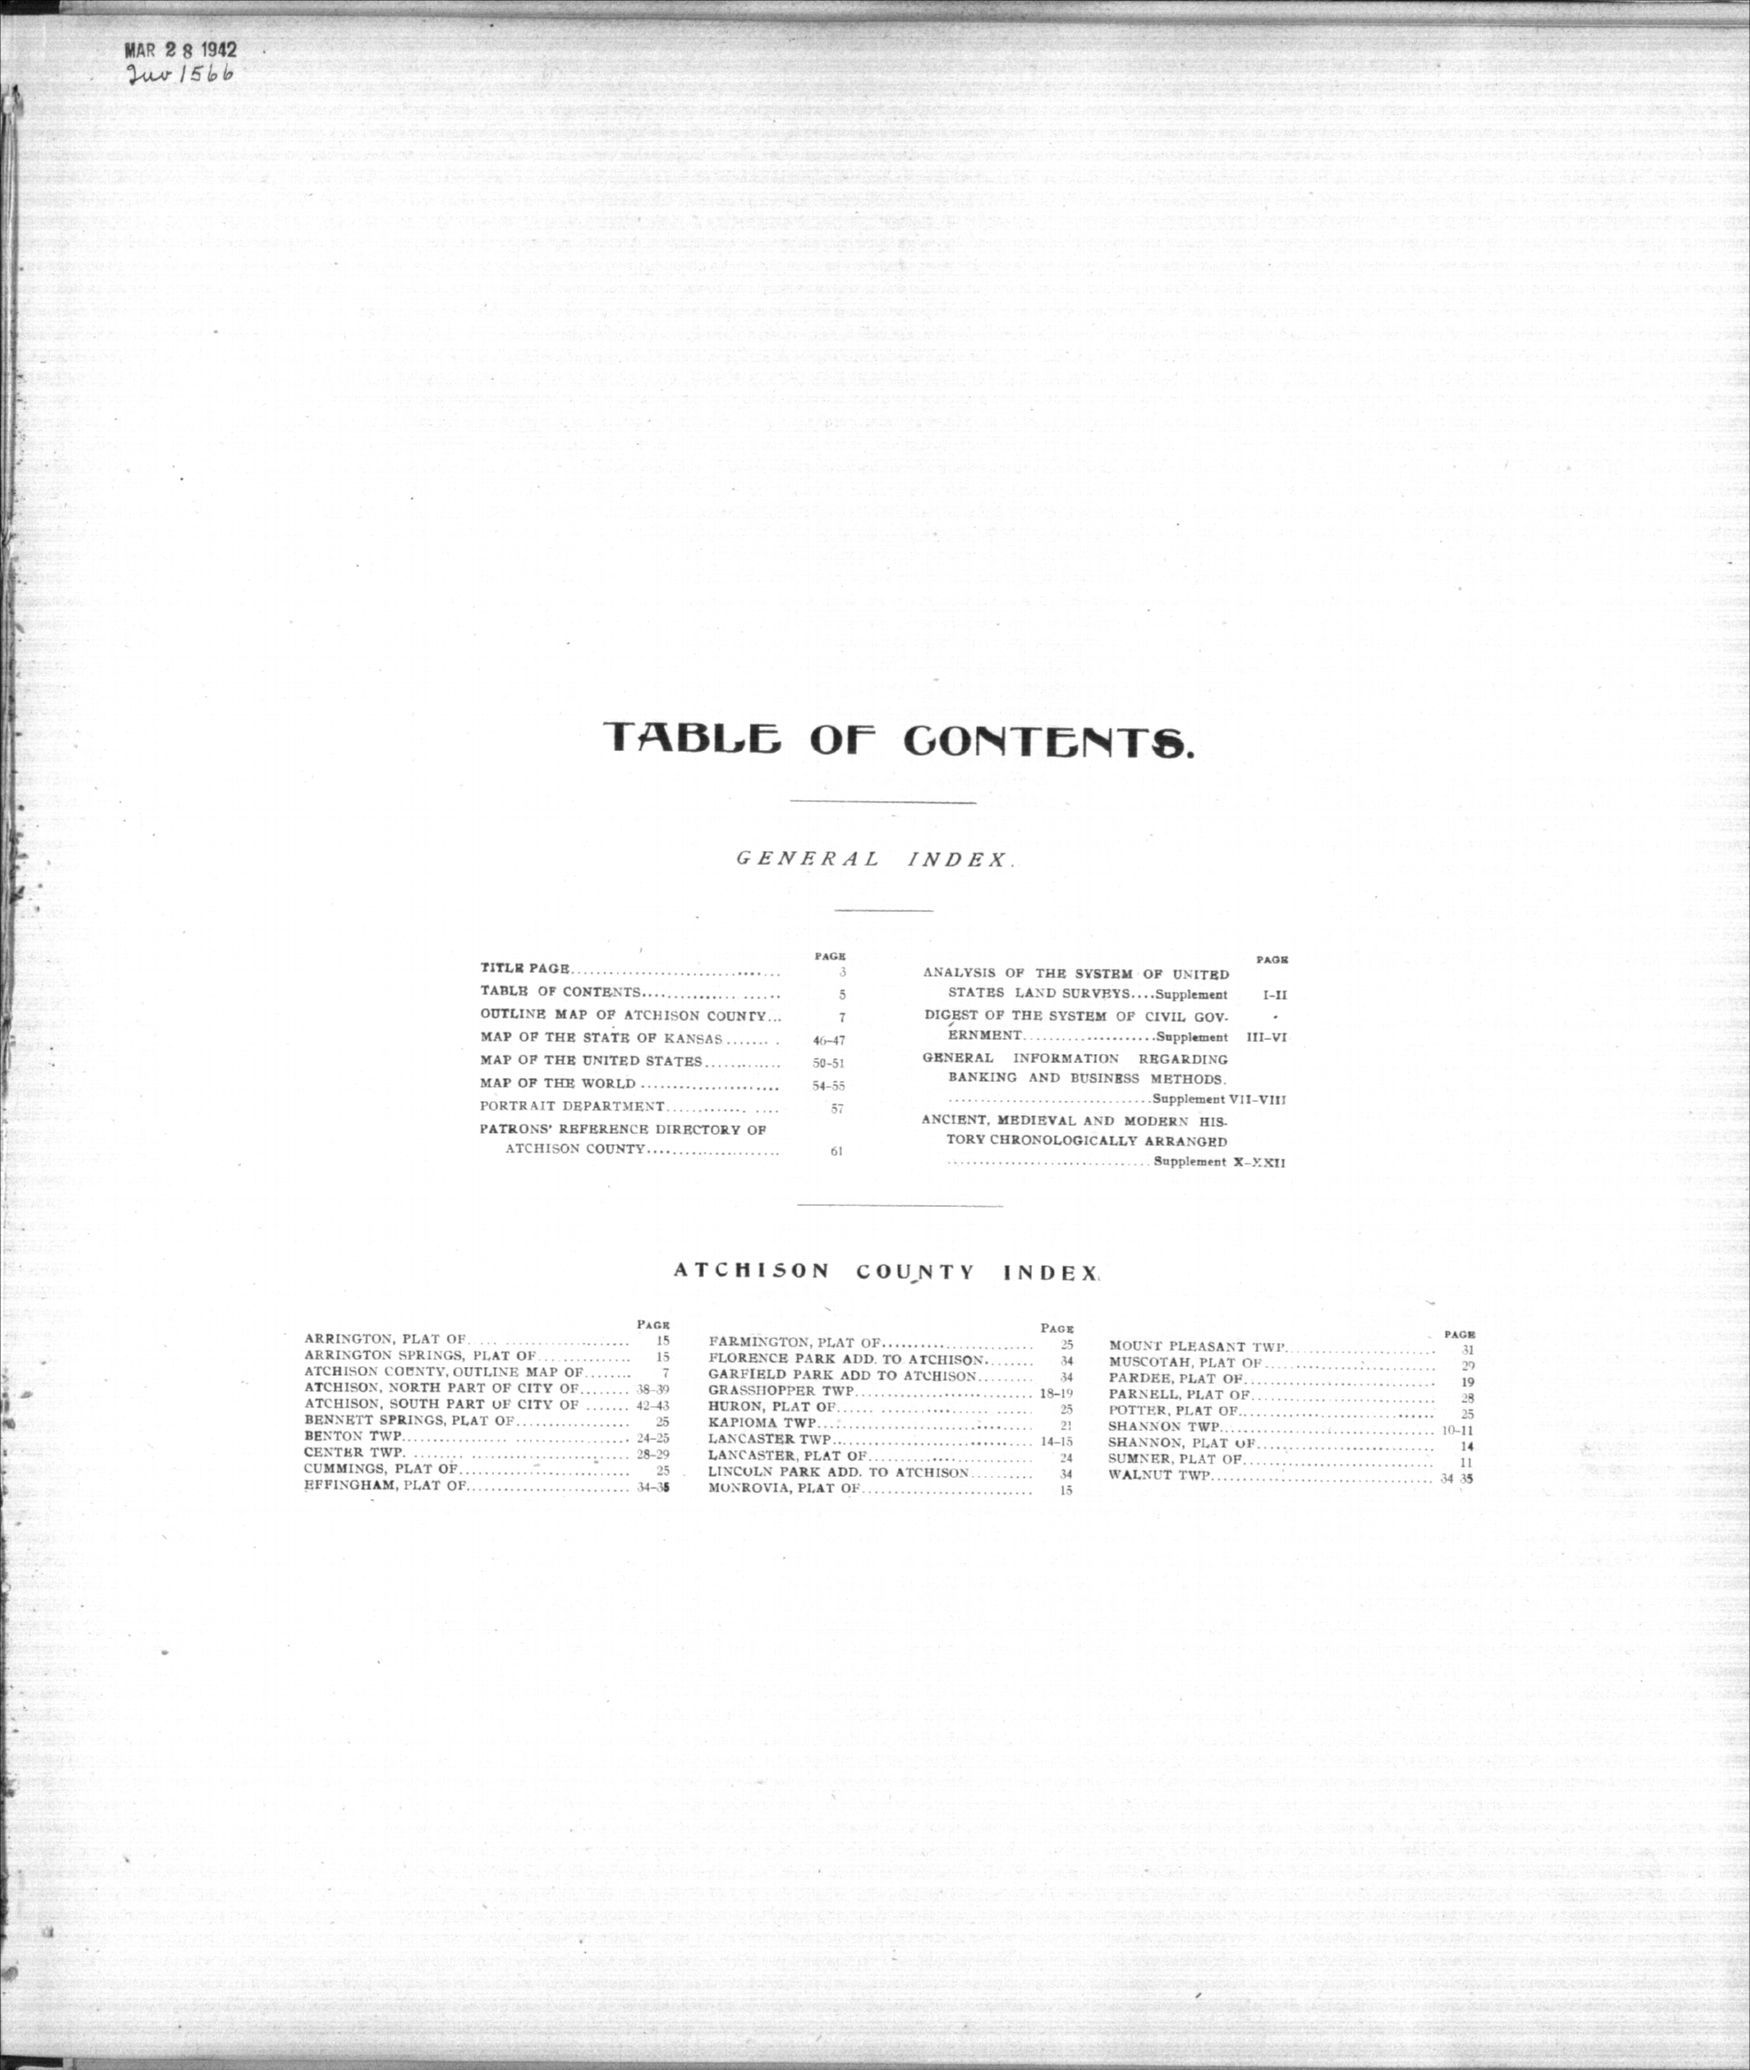 Standard atlas of Atchison County, Kansas - Table of Contents